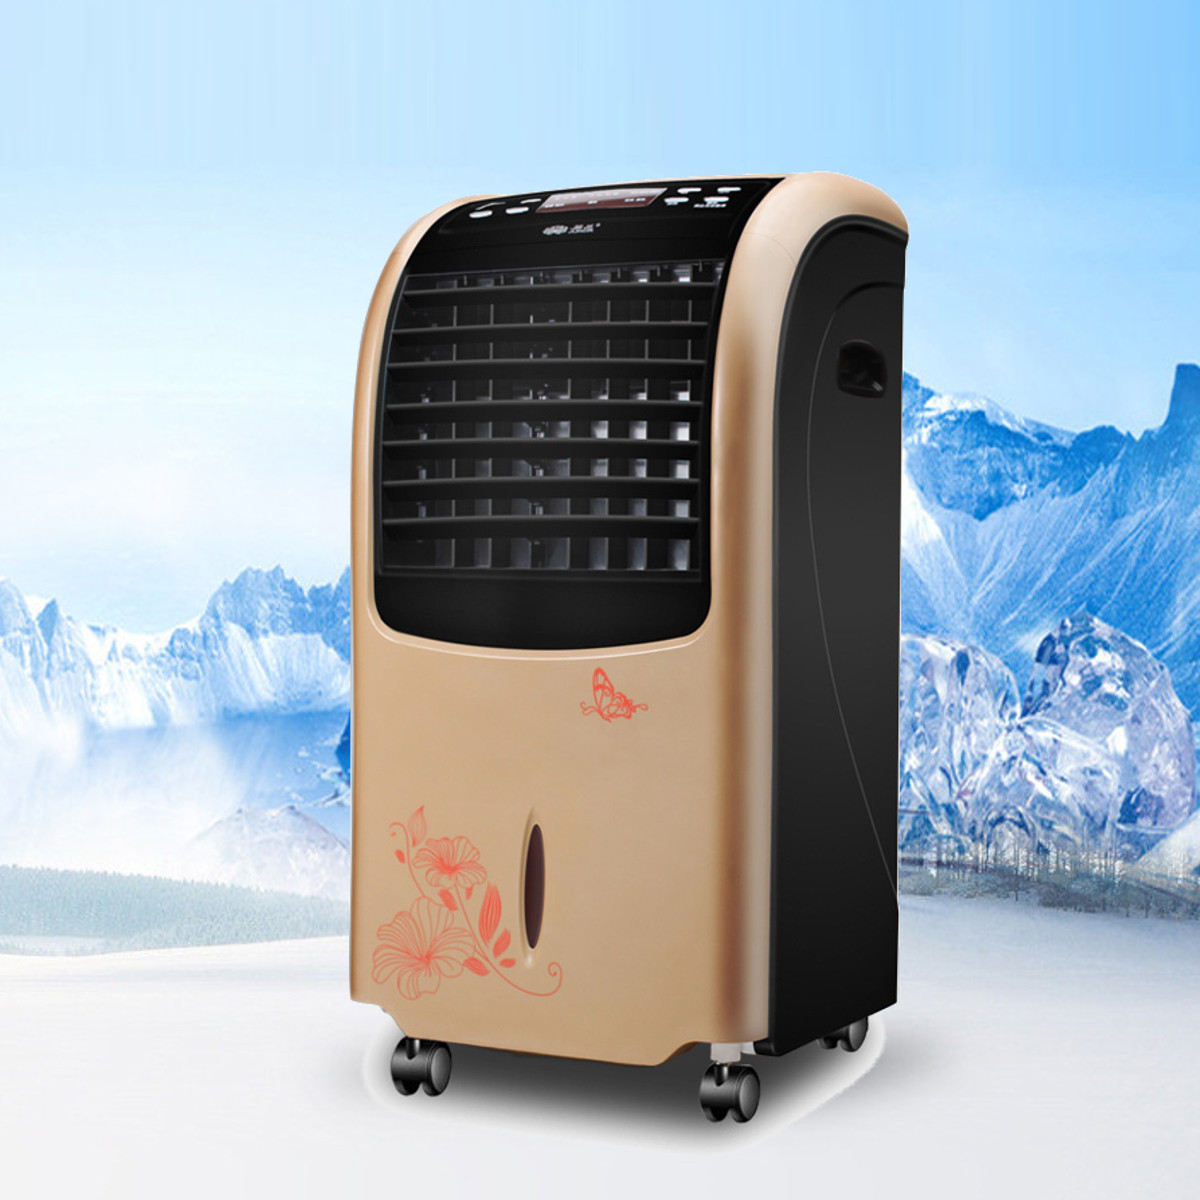 220V 80W Evaporative Portable Air Conditioner Cooler Fan Cooling Remote Conditioner Energysaving Purifier Personal220V 80W Evaporative Portable Air Conditioner Cooler Fan Cooling Remote Conditioner Energysaving Purifier Personal